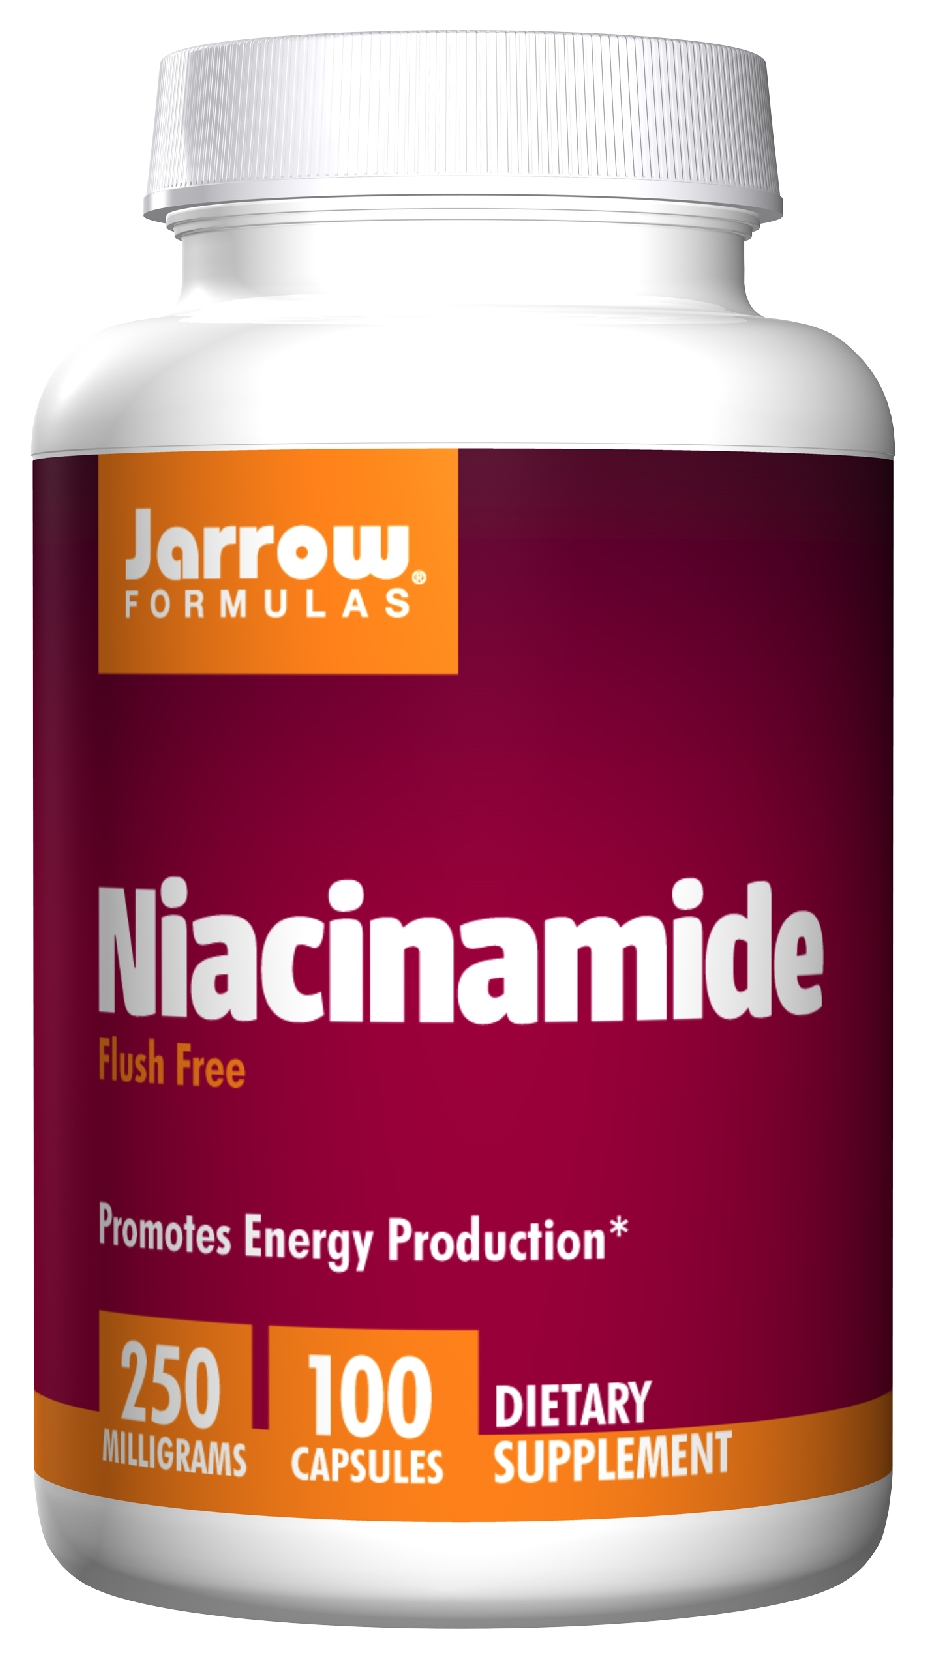 Niacinamide 250 mg 100 caps by Jarrow Formulas